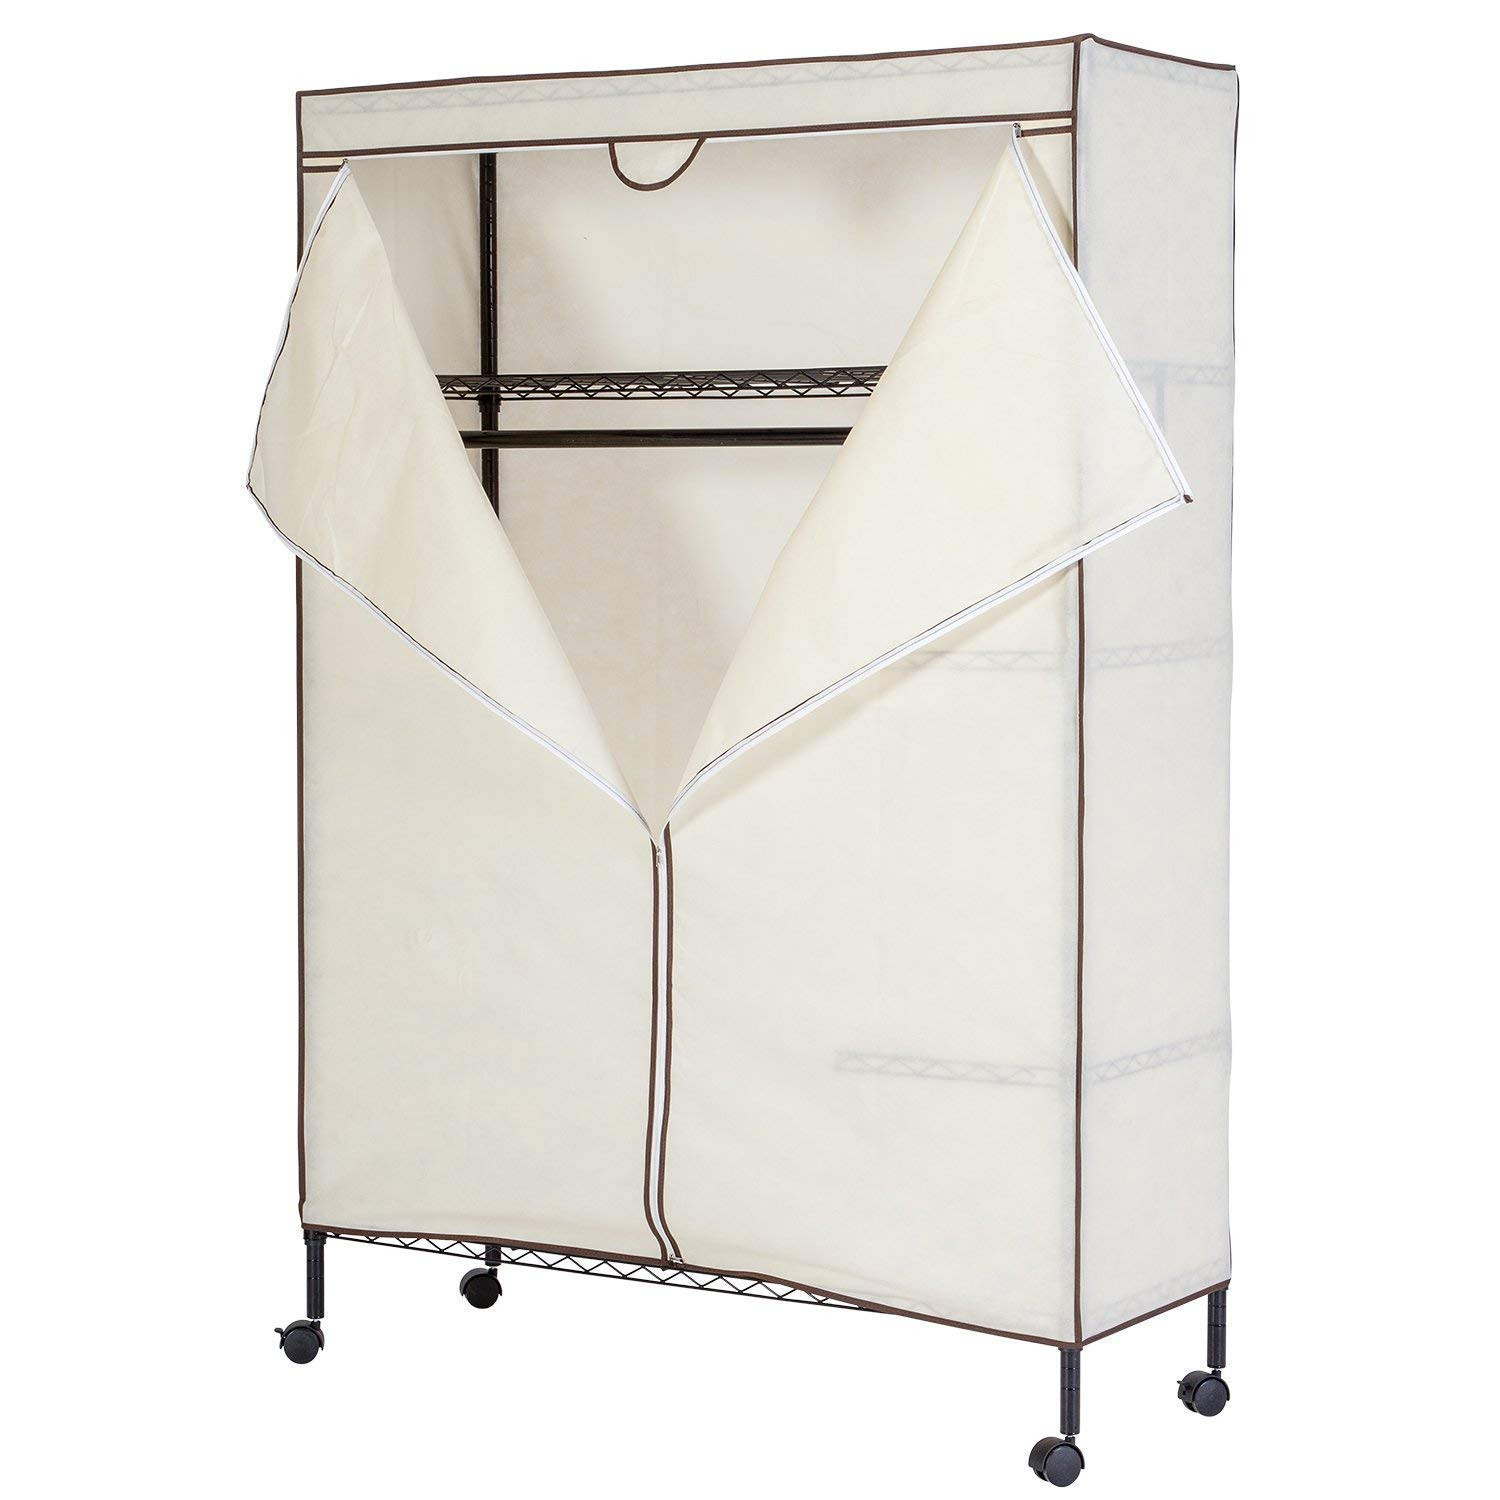 JS HOME Wardrobe Storage Orginizer/Garment Rack with Fitted Beidge Non-Woven Cover (0.22lbs)